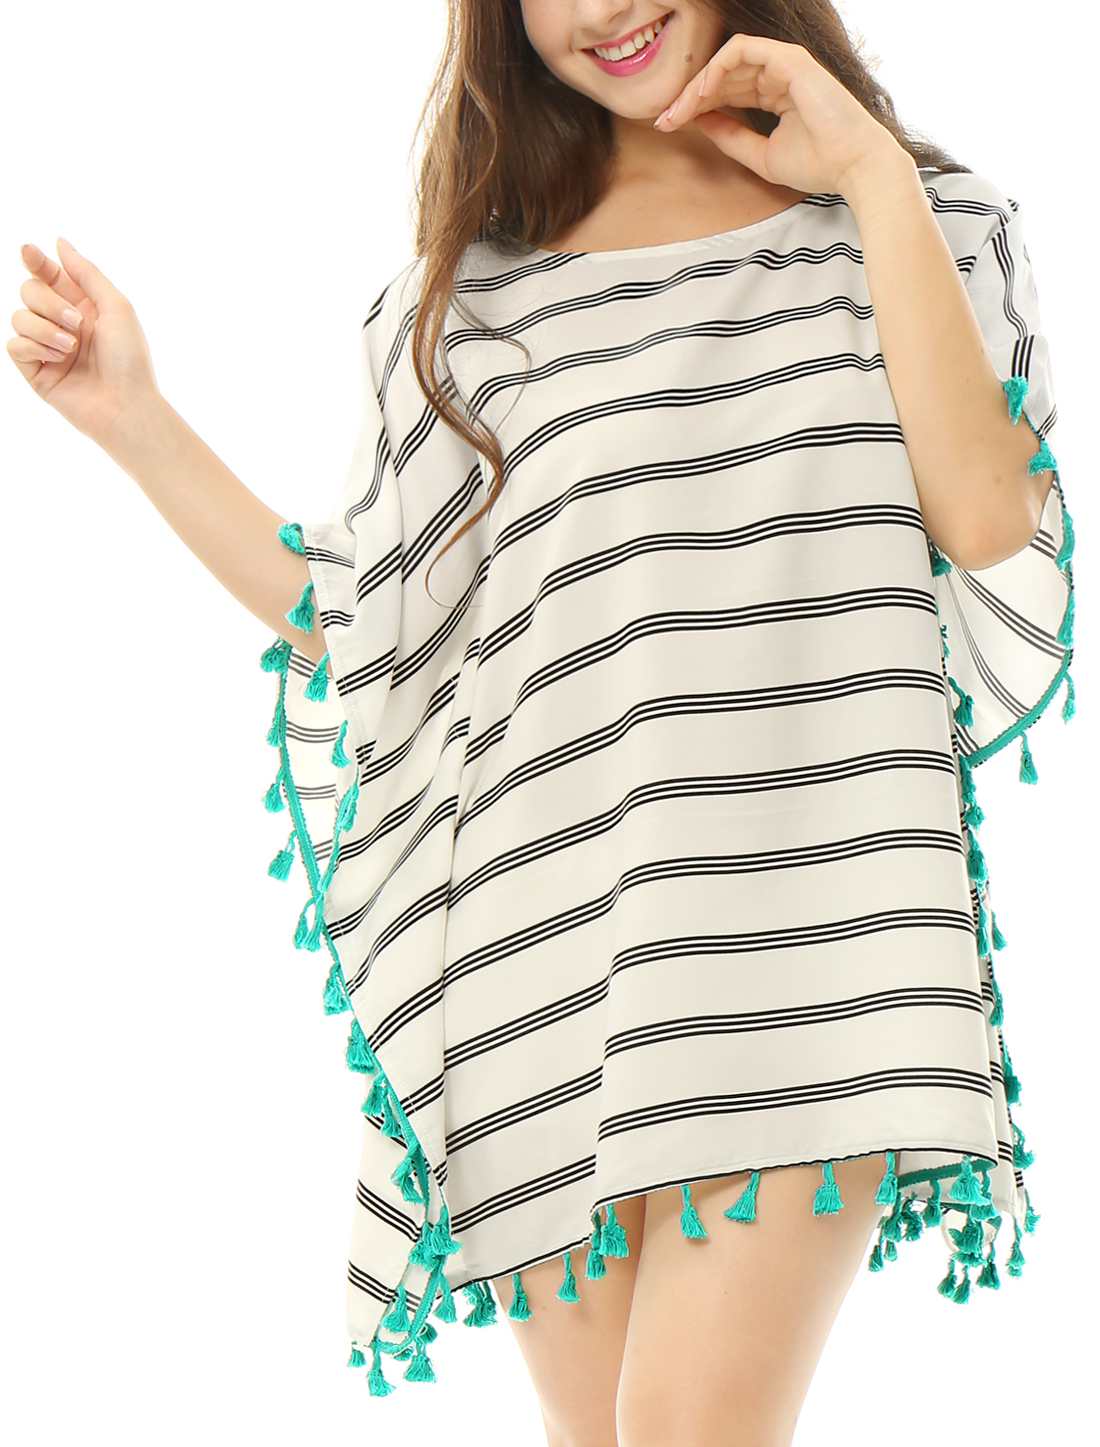 Women Tassel Trim Loose Stripes Cover Up Tunic Top White XS